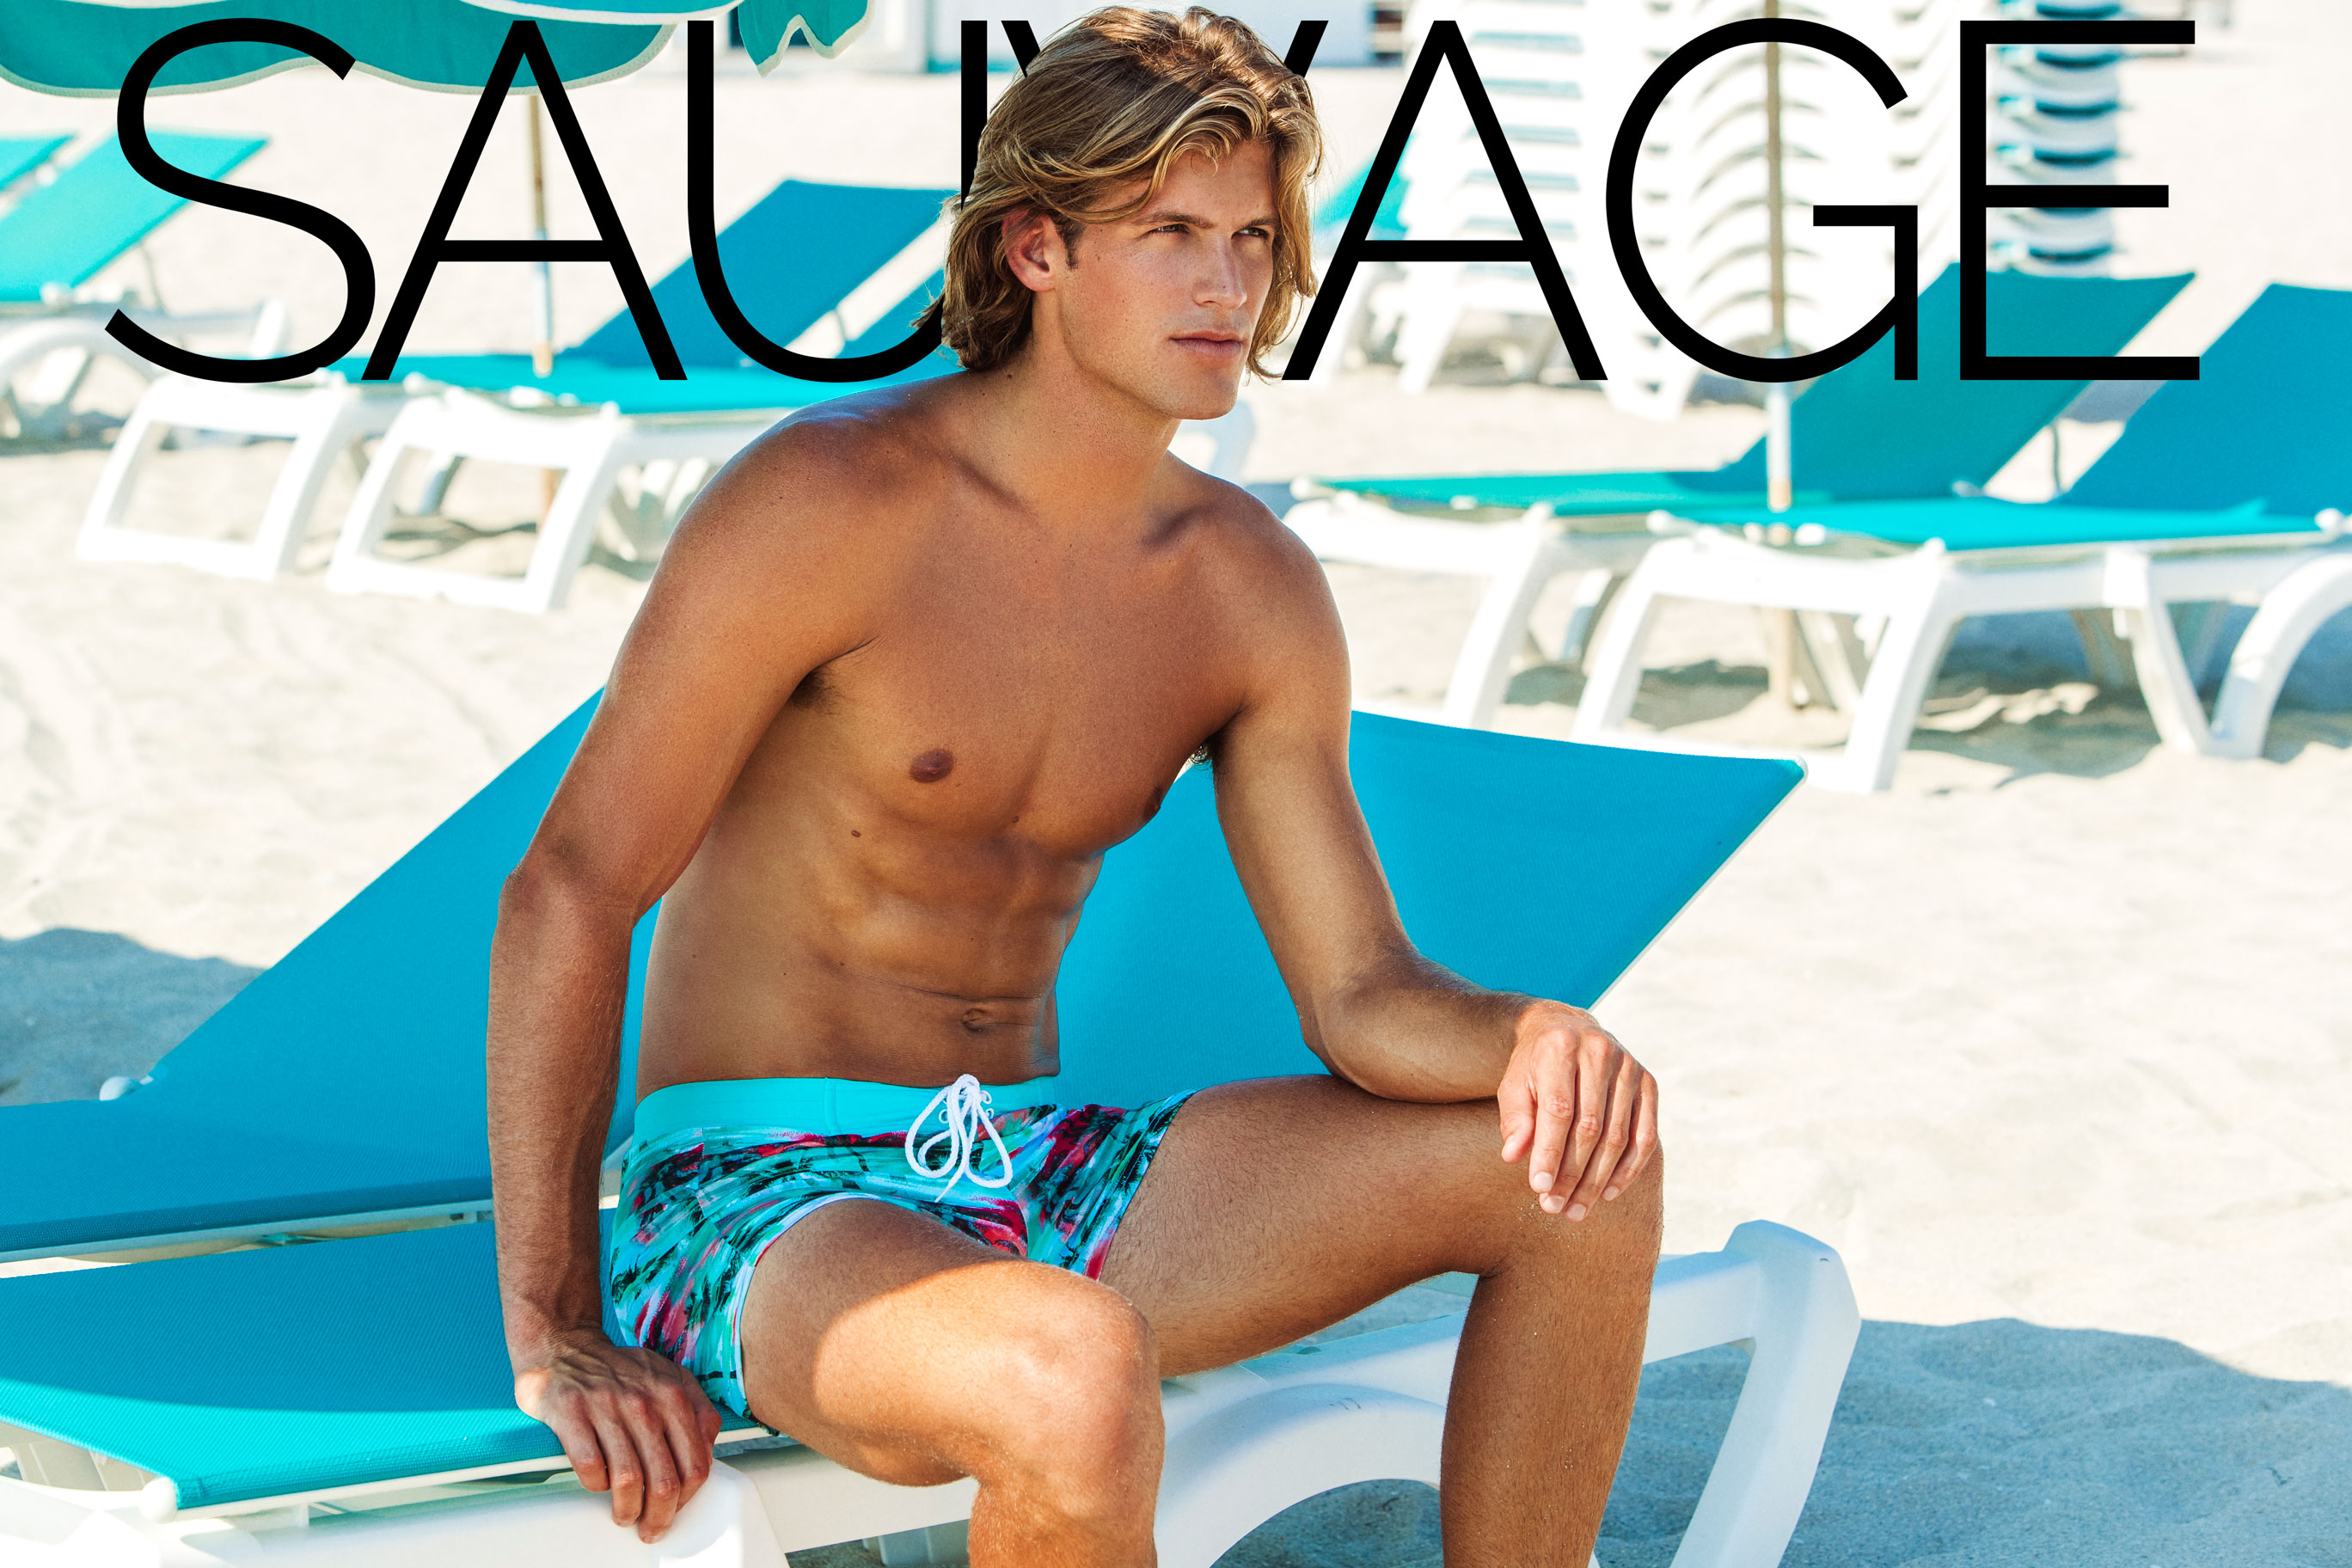 Sauvage Swimwear 2